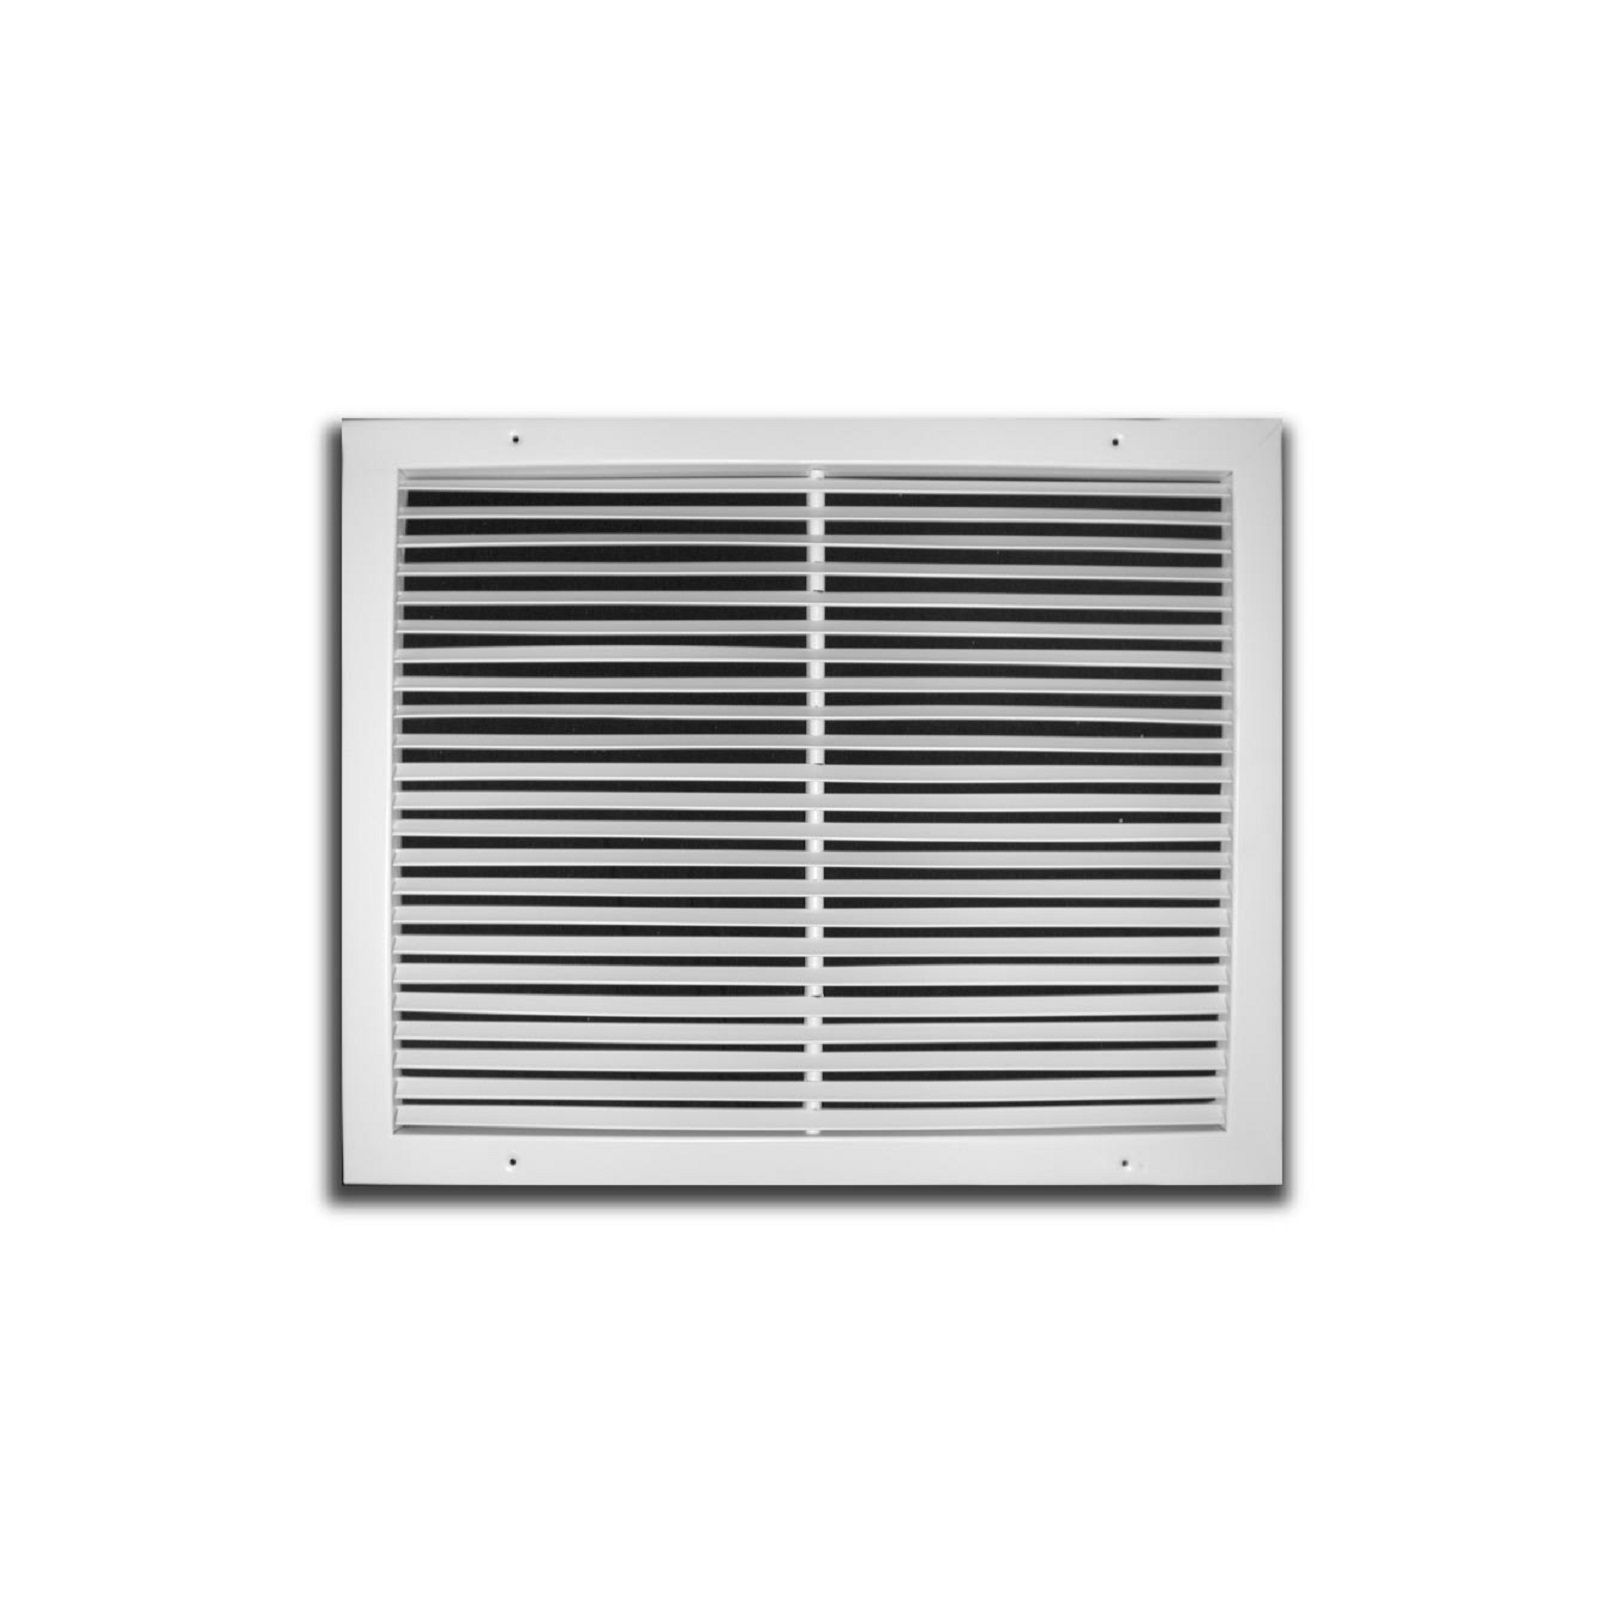 "TRUaire 270 30X06 - Steel Fixed Bar Return Air Grille, White, 30"" X 06"""